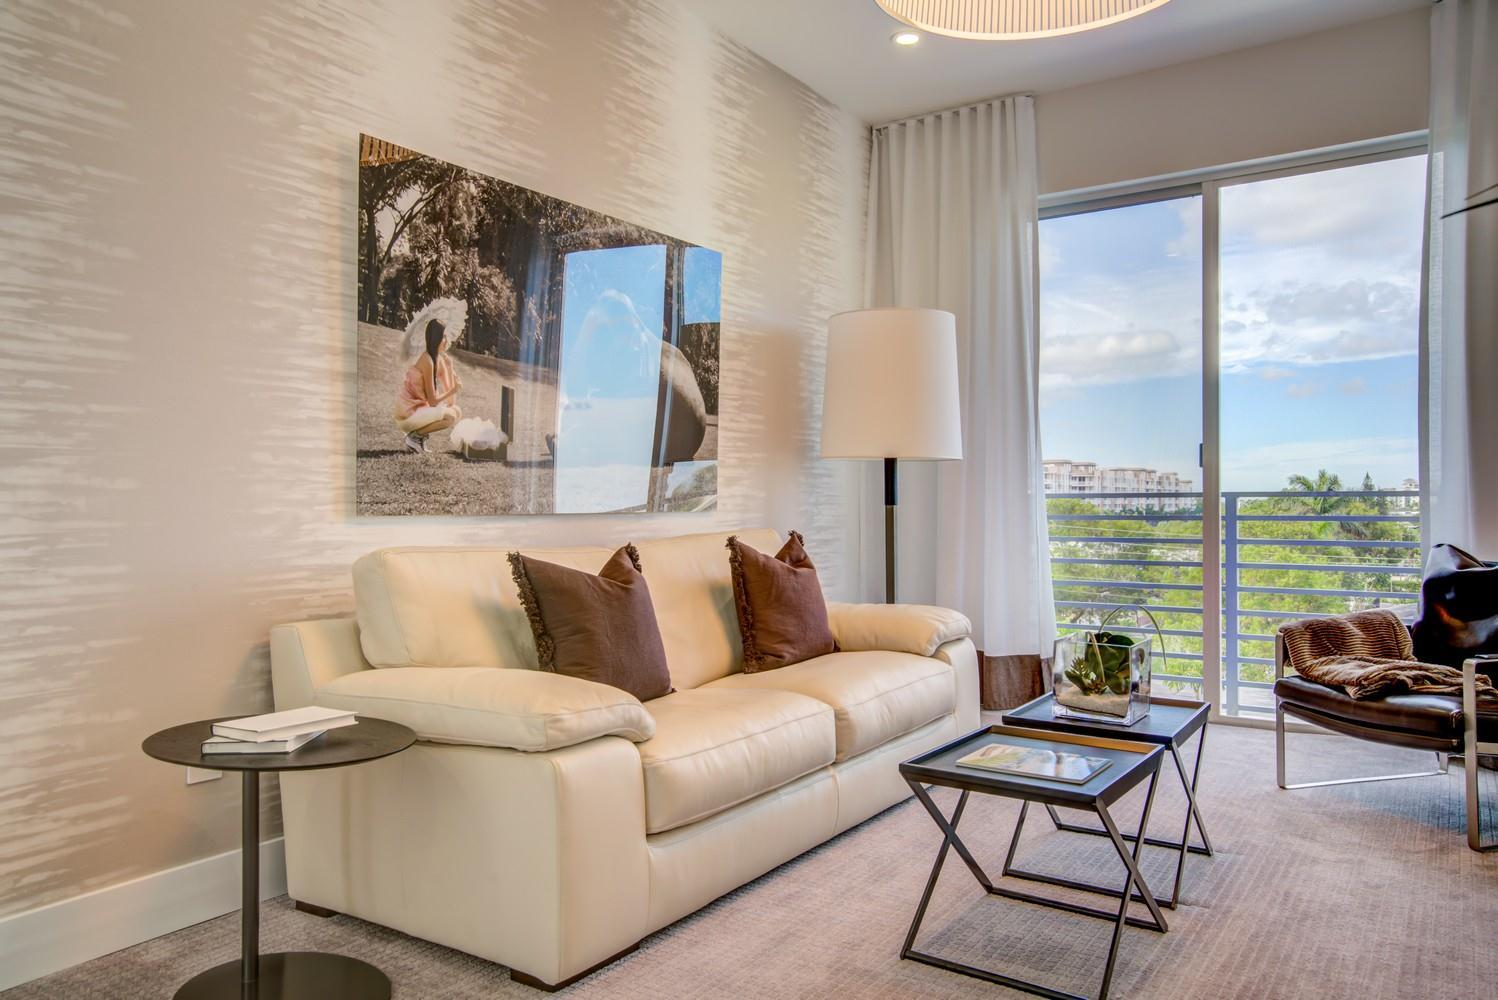 Living Area featured in the Model C - West By Sobel Co in Broward County-Ft. Lauderdale, FL